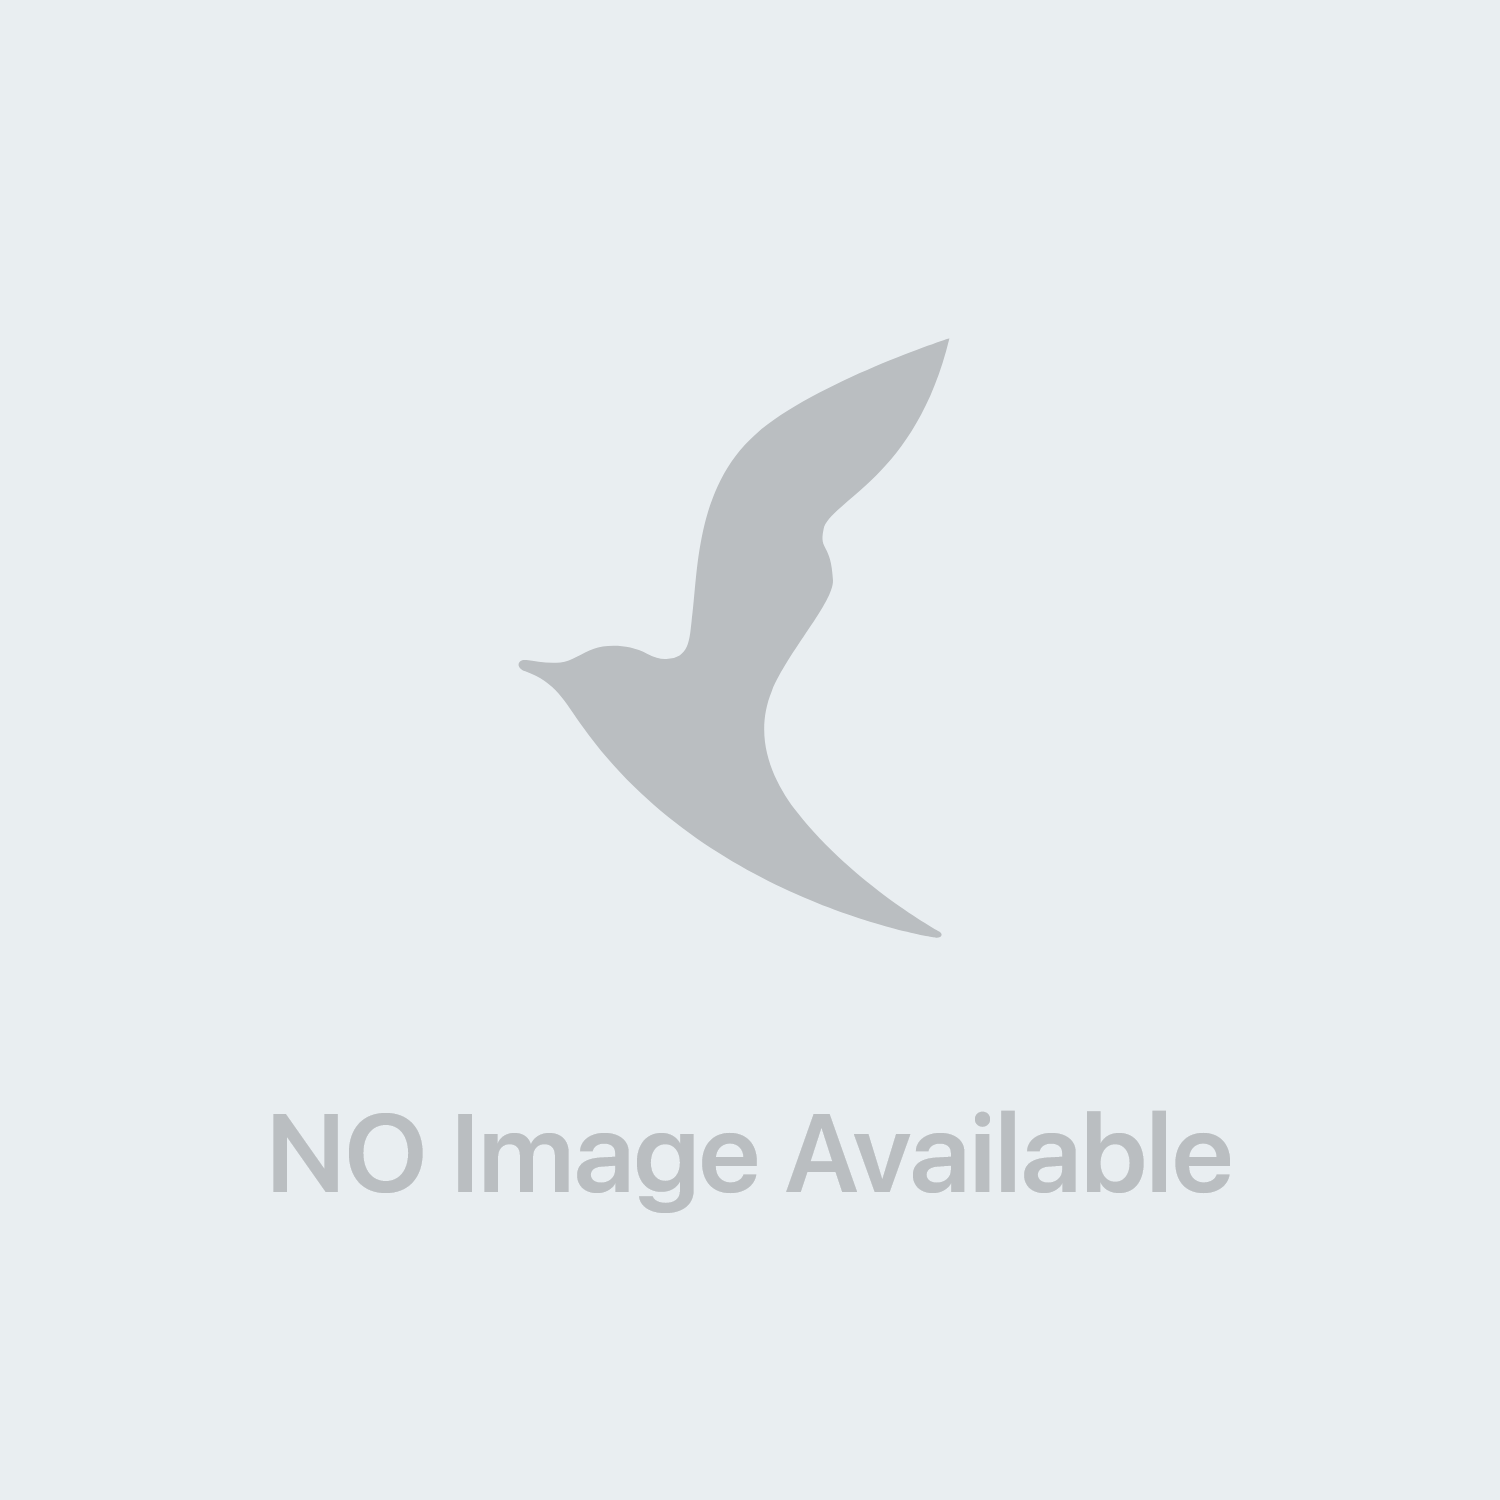 Rilastil Progression Energy Siero Energizzante 15 Ml